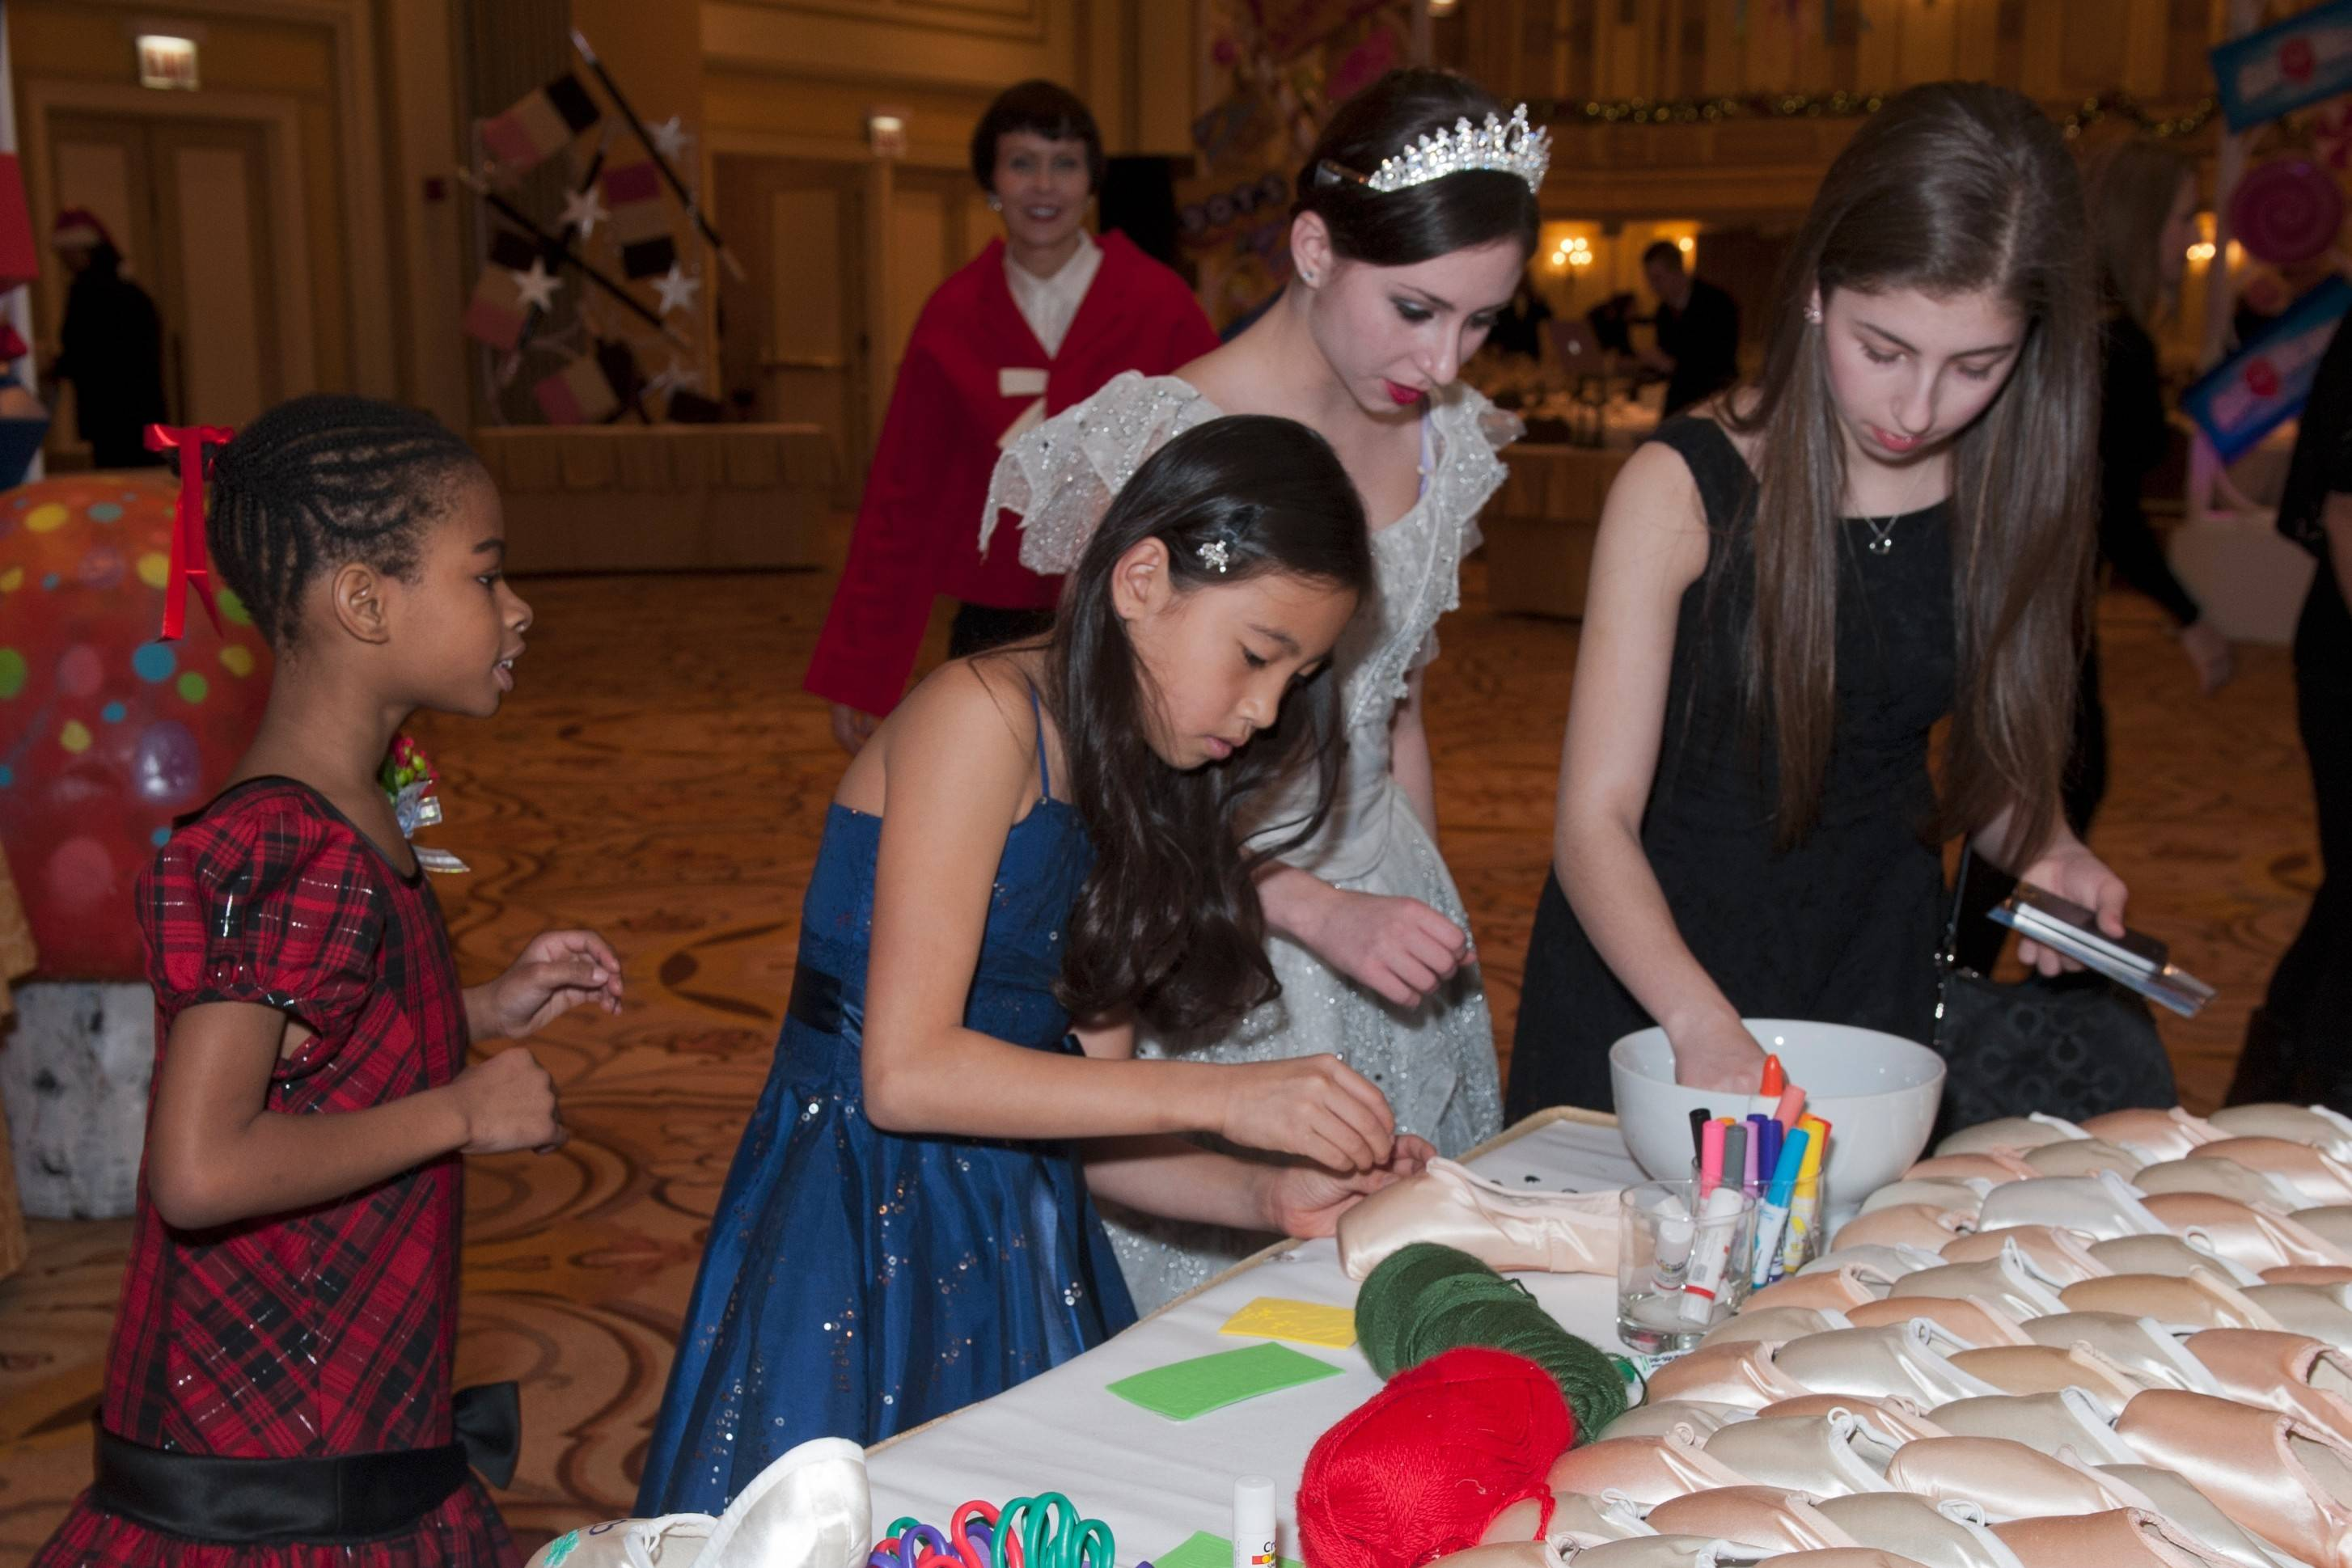 Get tickets to the Joffrey Ballet's 17th Annual Nutcracker Family Dinner at the Radisson Blu Aqua on Sunday, Dec. 7.